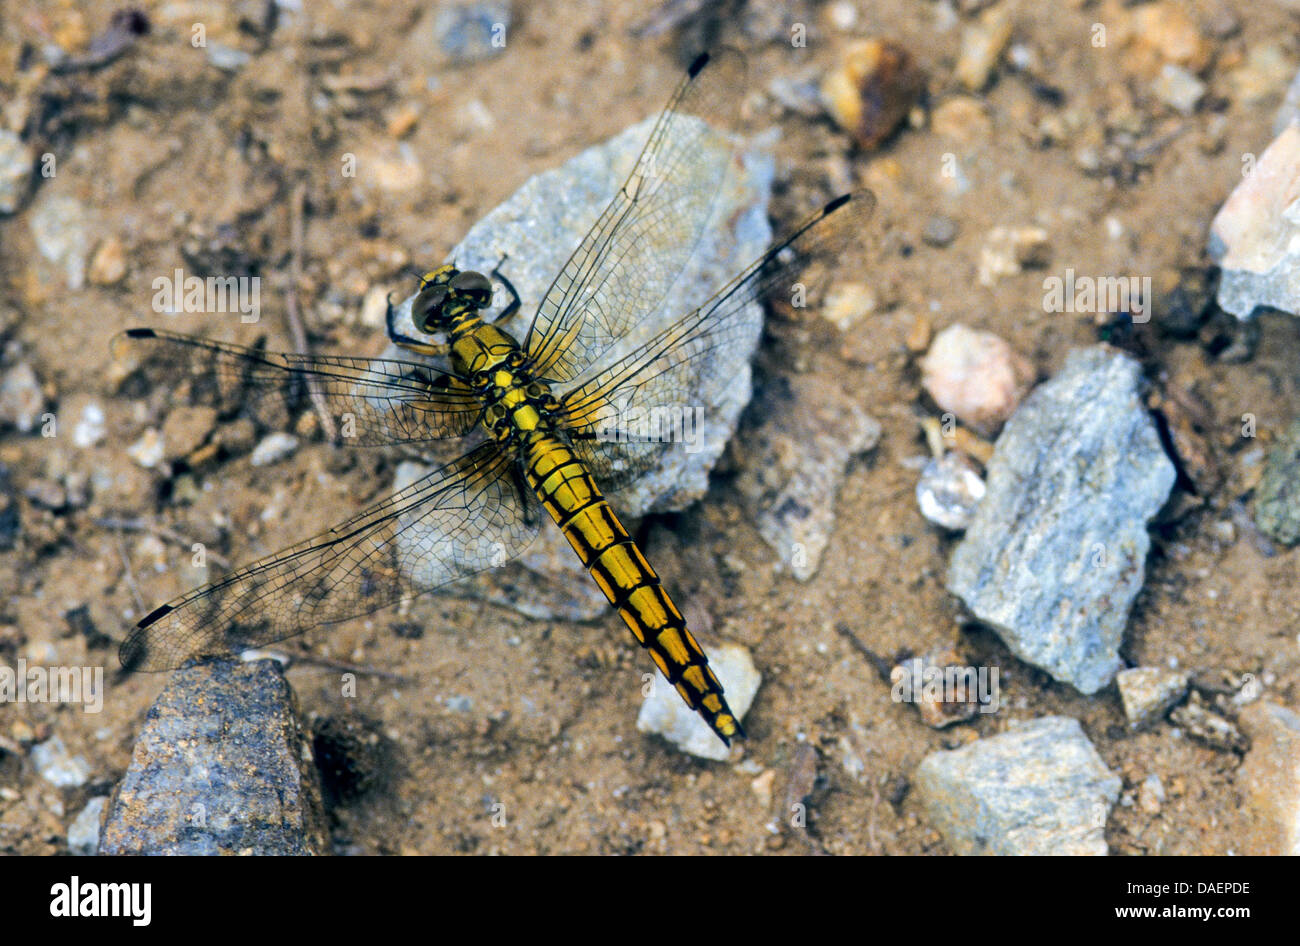 black-tailed skimmer (Orthetrum cancellatum), female on the fround, Germany - Stock Image